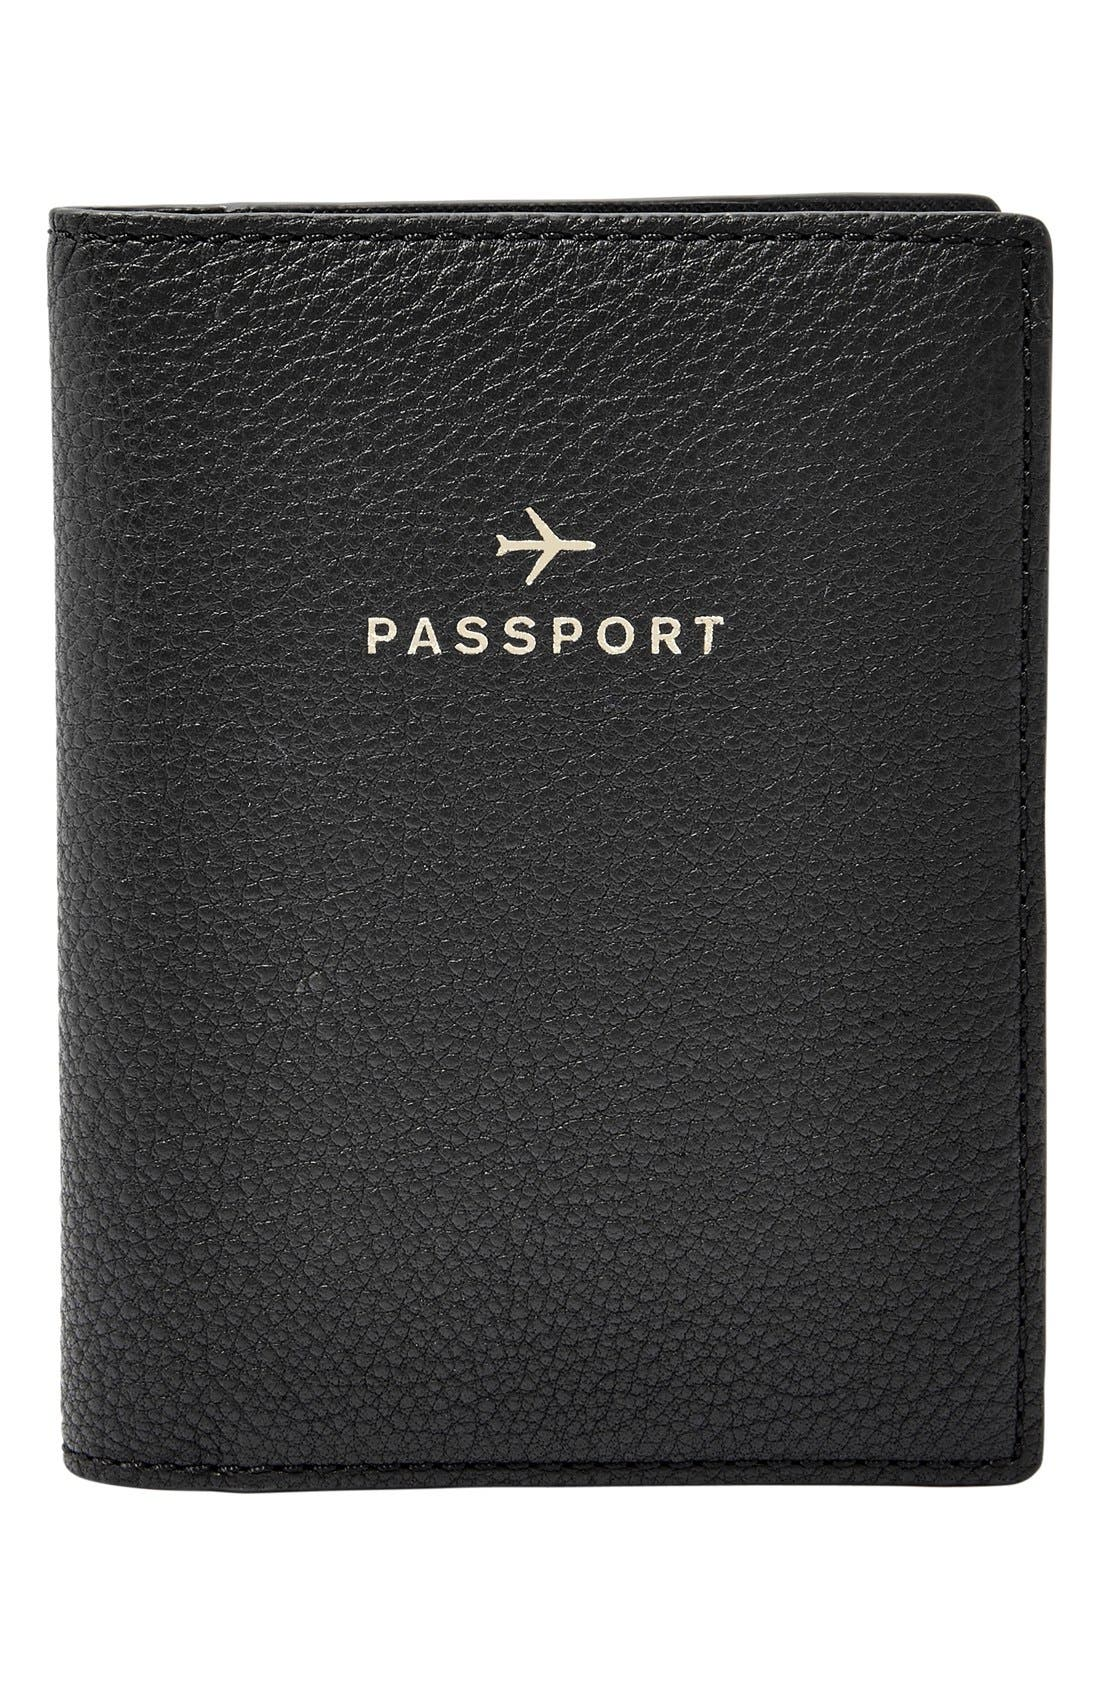 Alternate Image 1 Selected - Fossil 'RFID' Pebbled Leather Passport Case